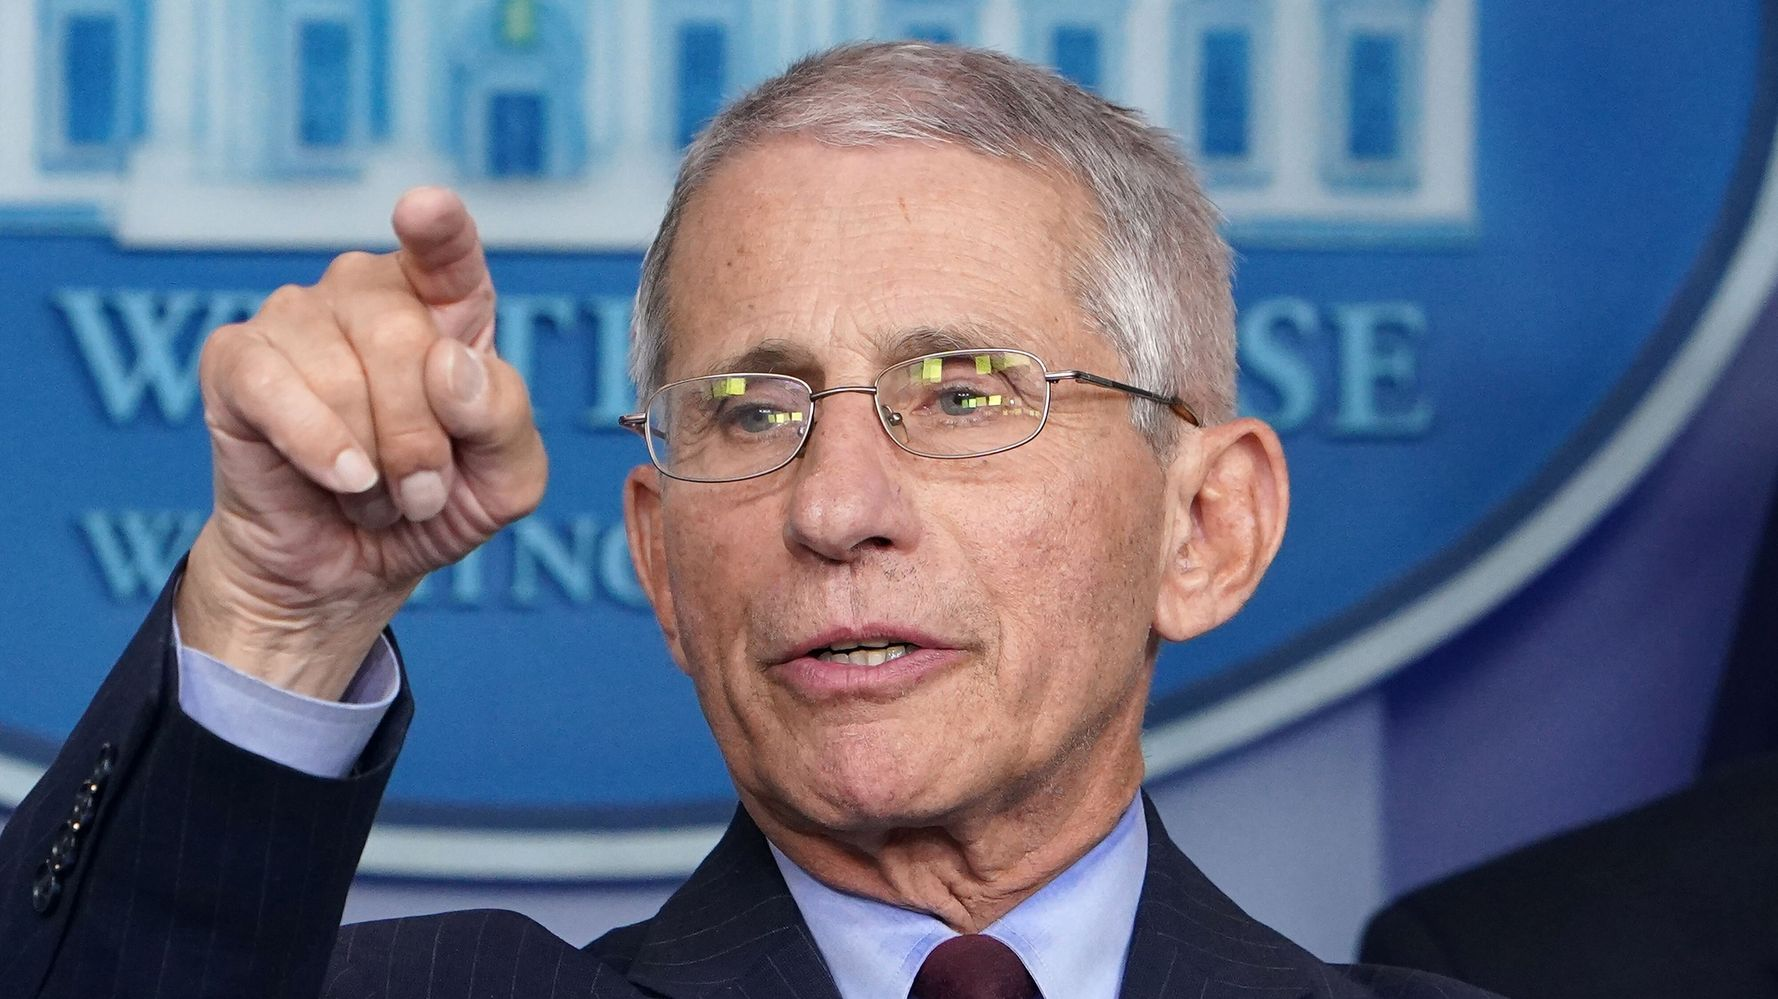 Fauci Suggests Need For National Lockdown As More States Issue Stay-At-Home Orders